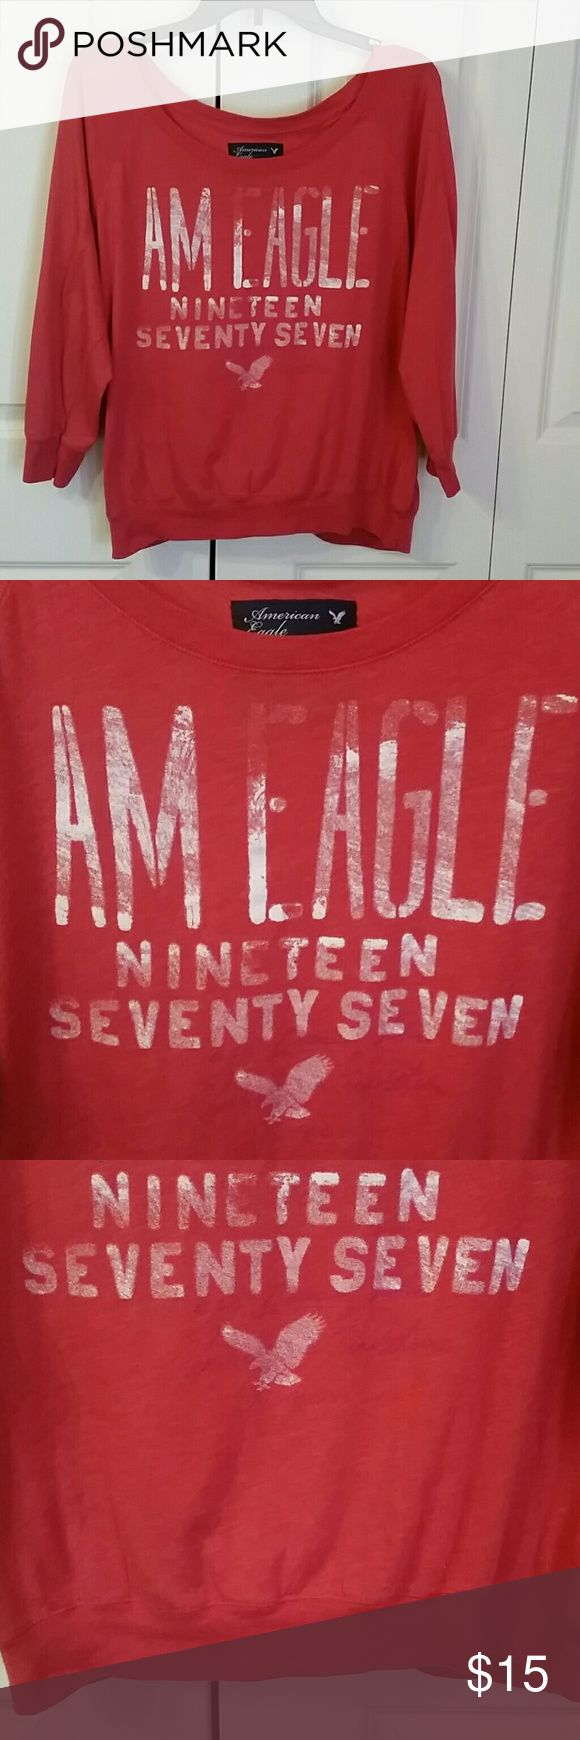 SUPER COMFY TOP! Really nice 3/ 4 sleeves,  banded bottom , lightweight tshirt excellent condition distressed look is intended American Eagle Outfitters Tops